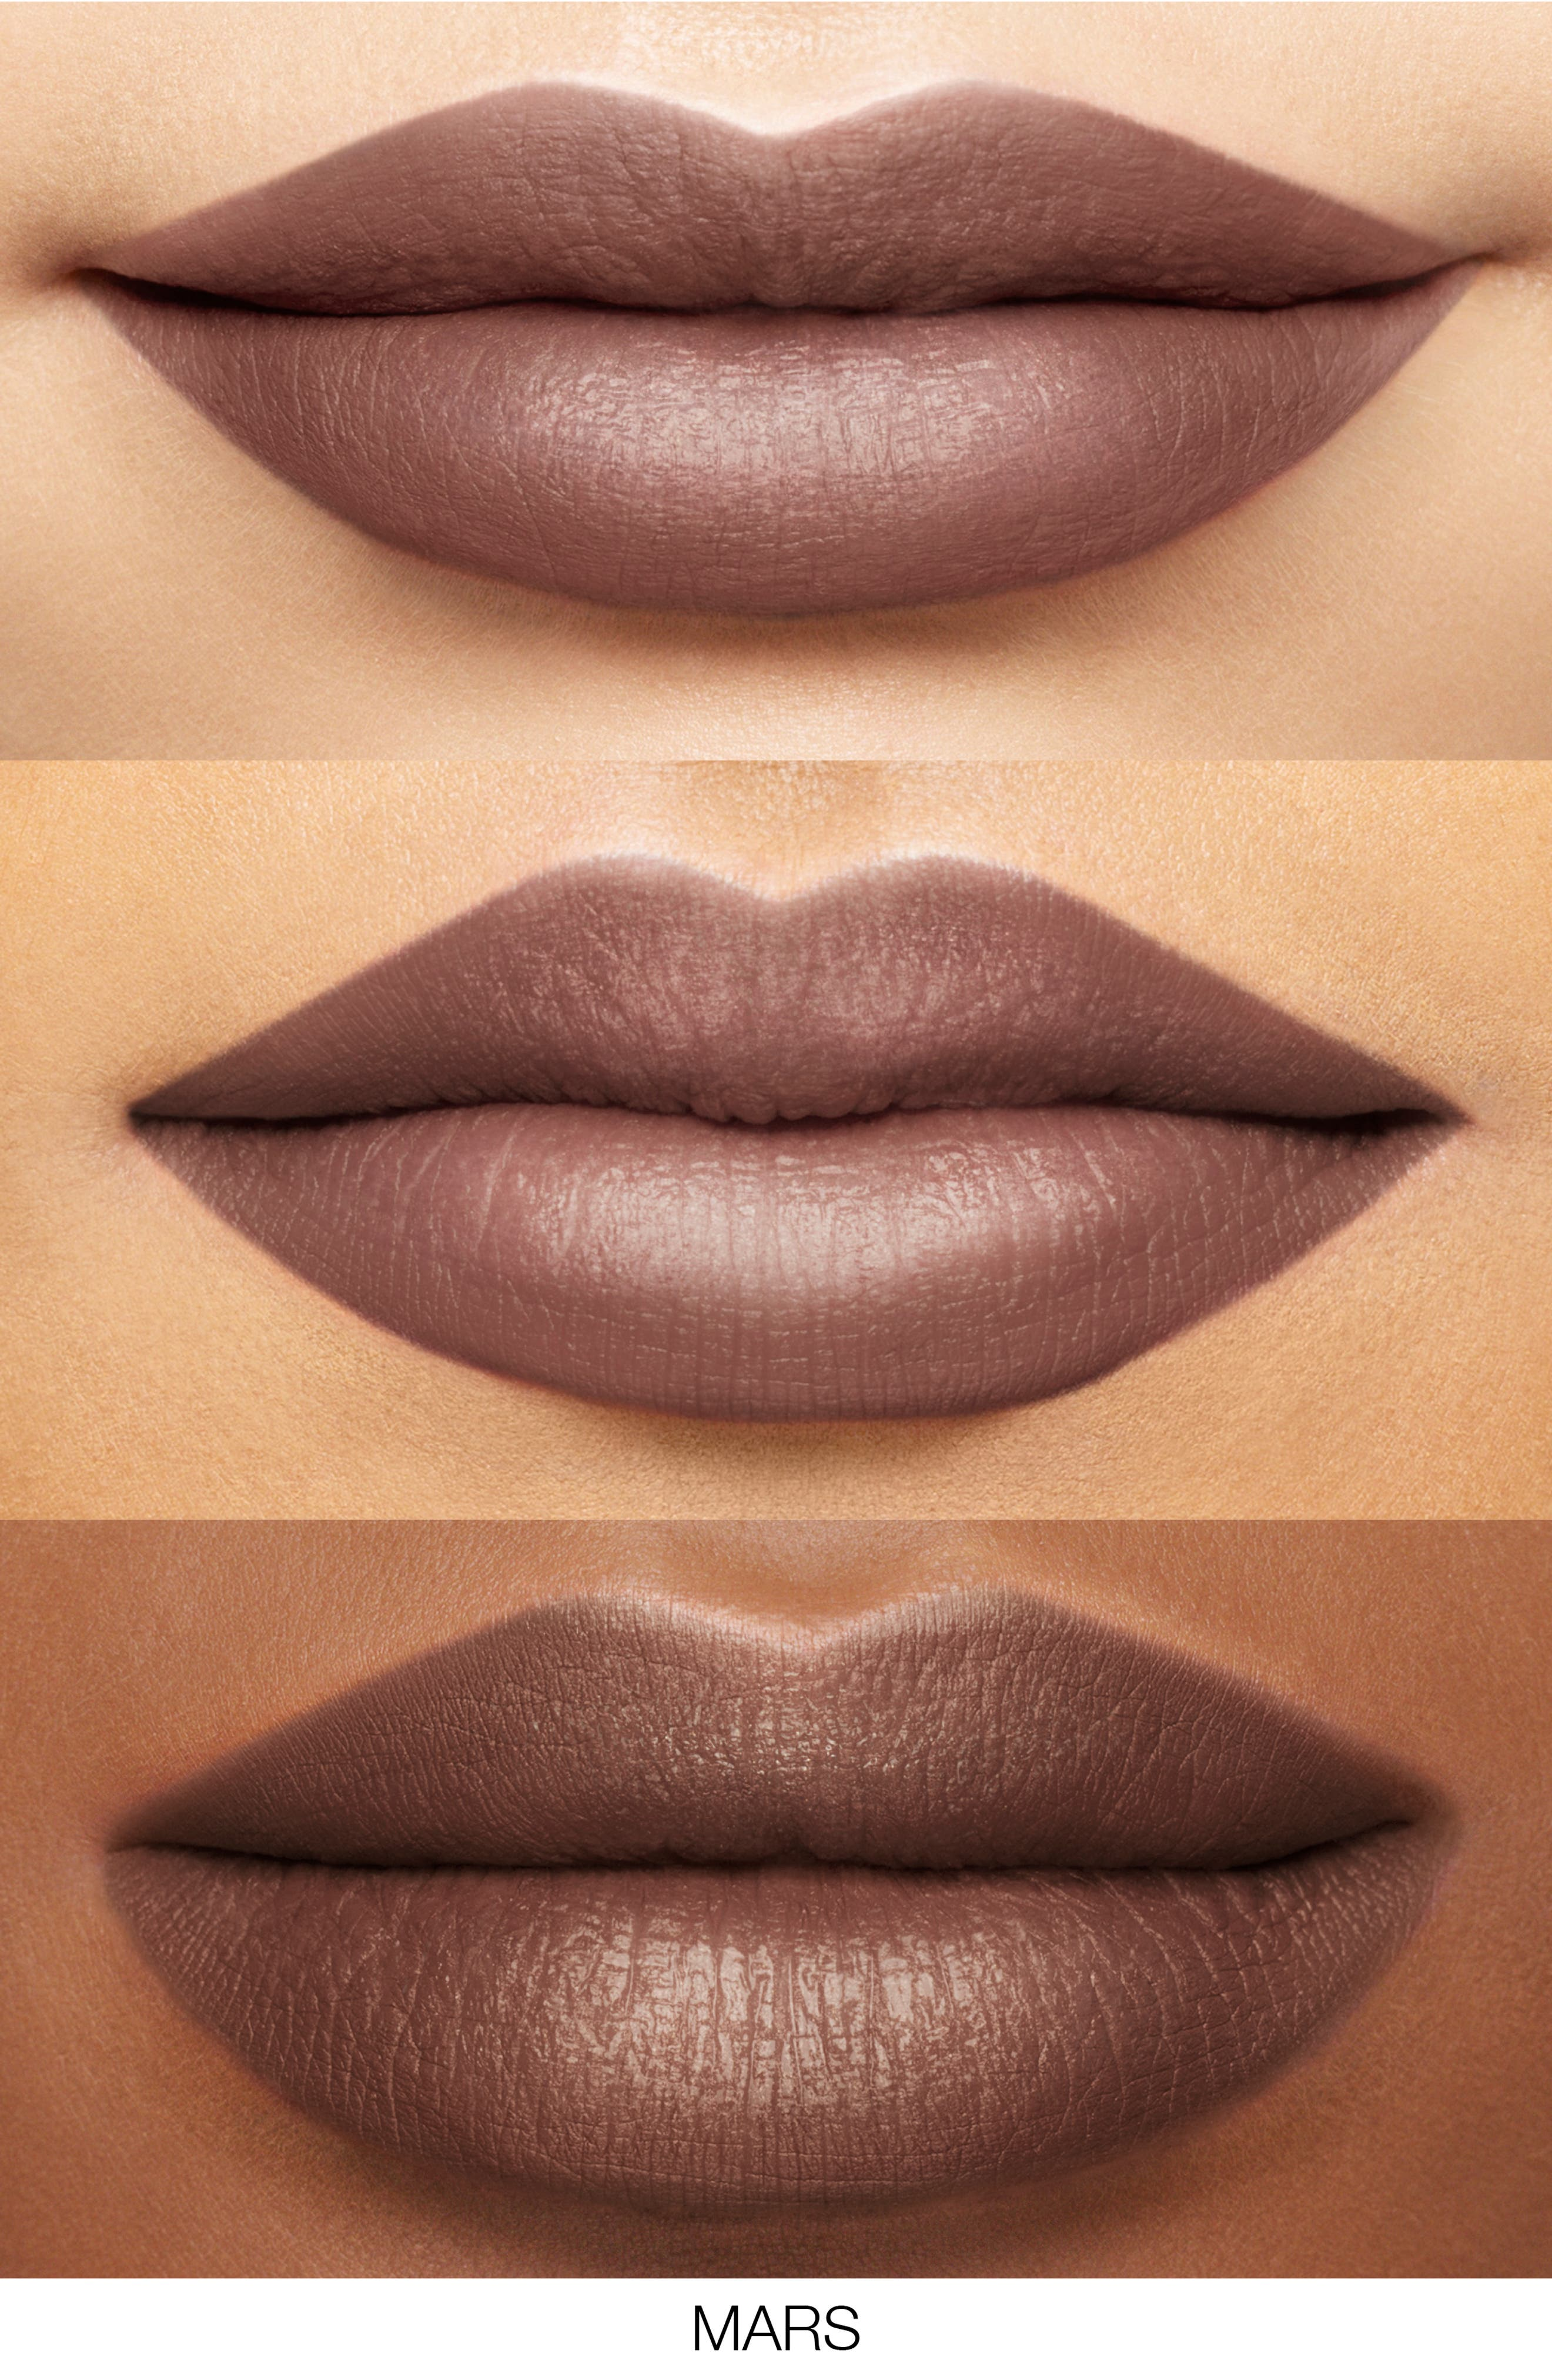 Velvet Lip Glide,                             Alternate thumbnail 2, color,                             MARS